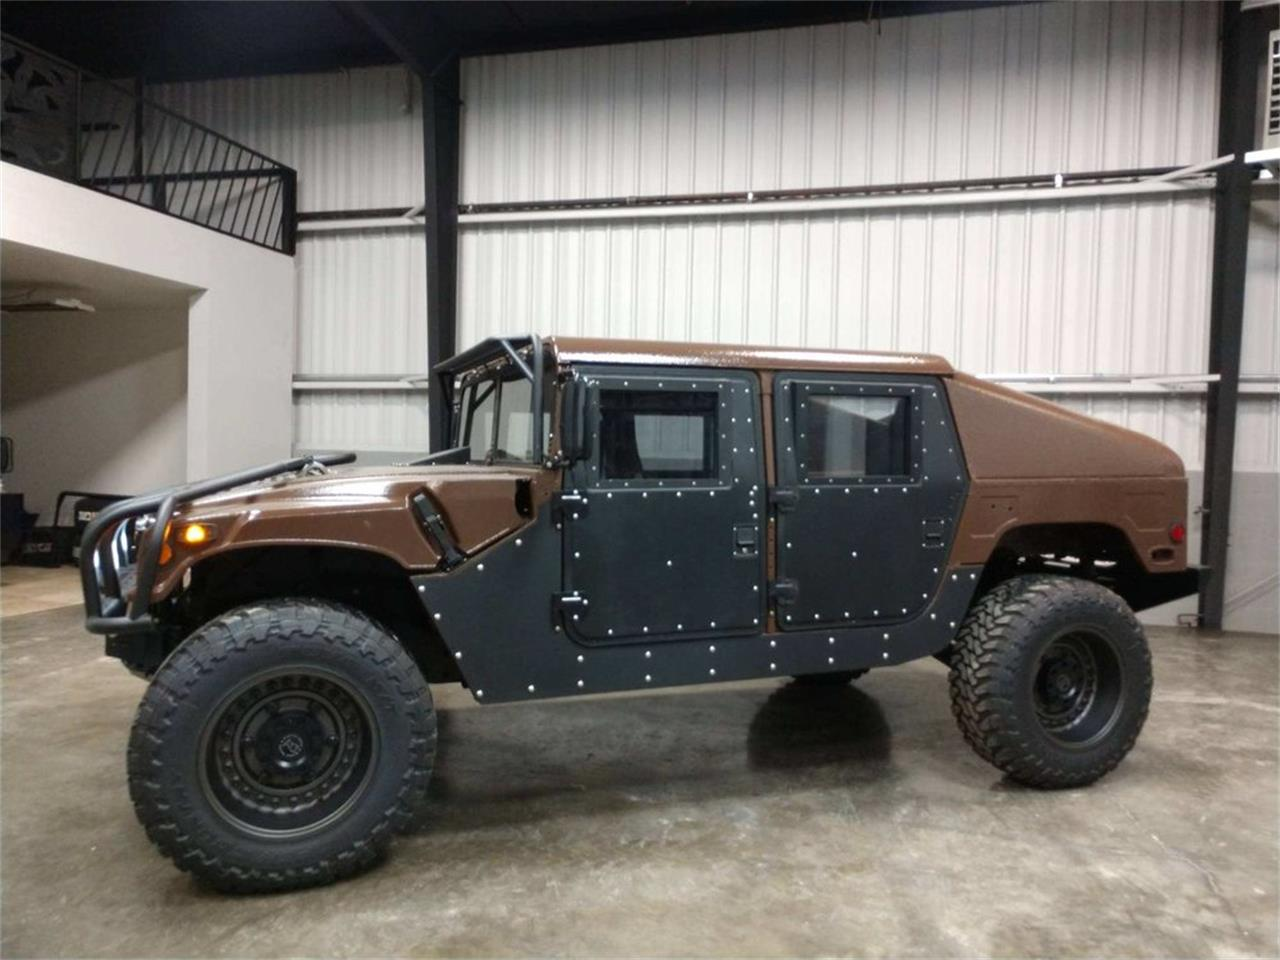 1111 Hummer H11 for sale in Sugar Hill, GA / ClassicCarsBay.com | lifted hummer h1 for sale